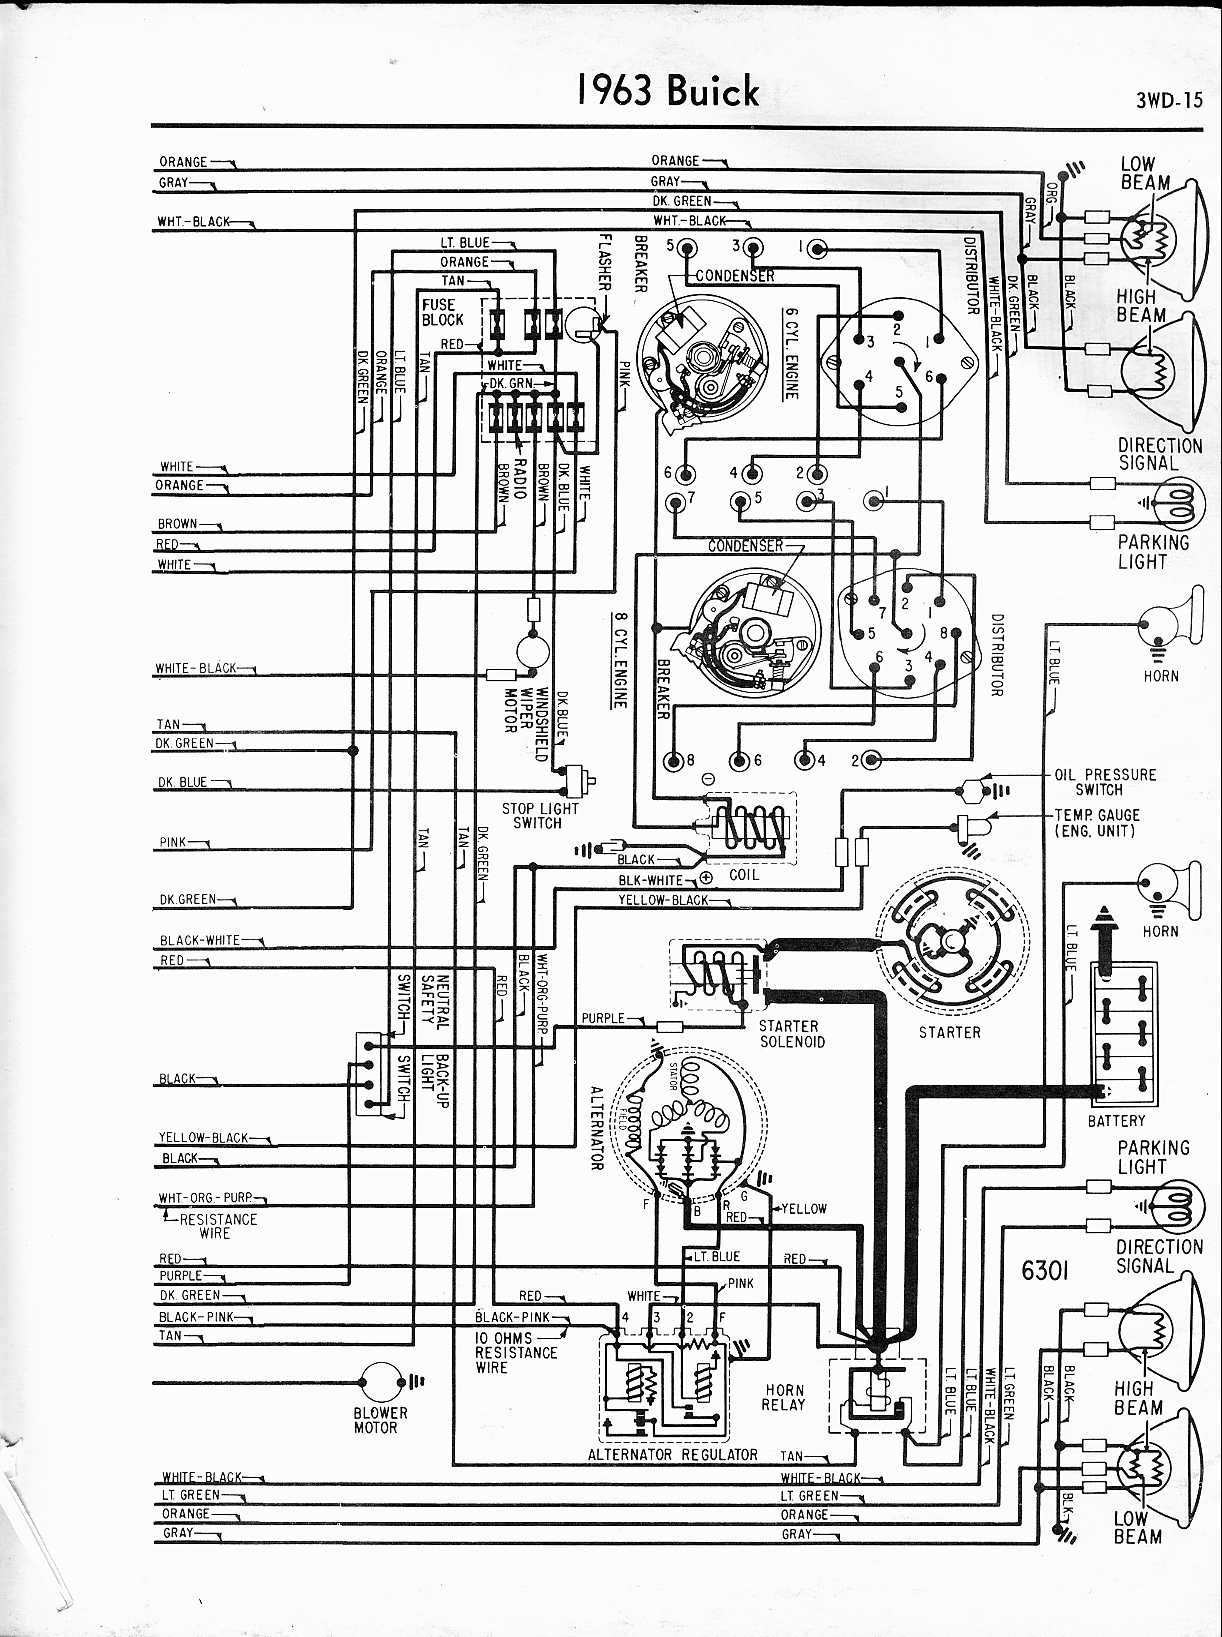 1969 skylark wiring diagrams wiring diagram u2022 rh msblog co 1969 Cutlass 1970 Skylark